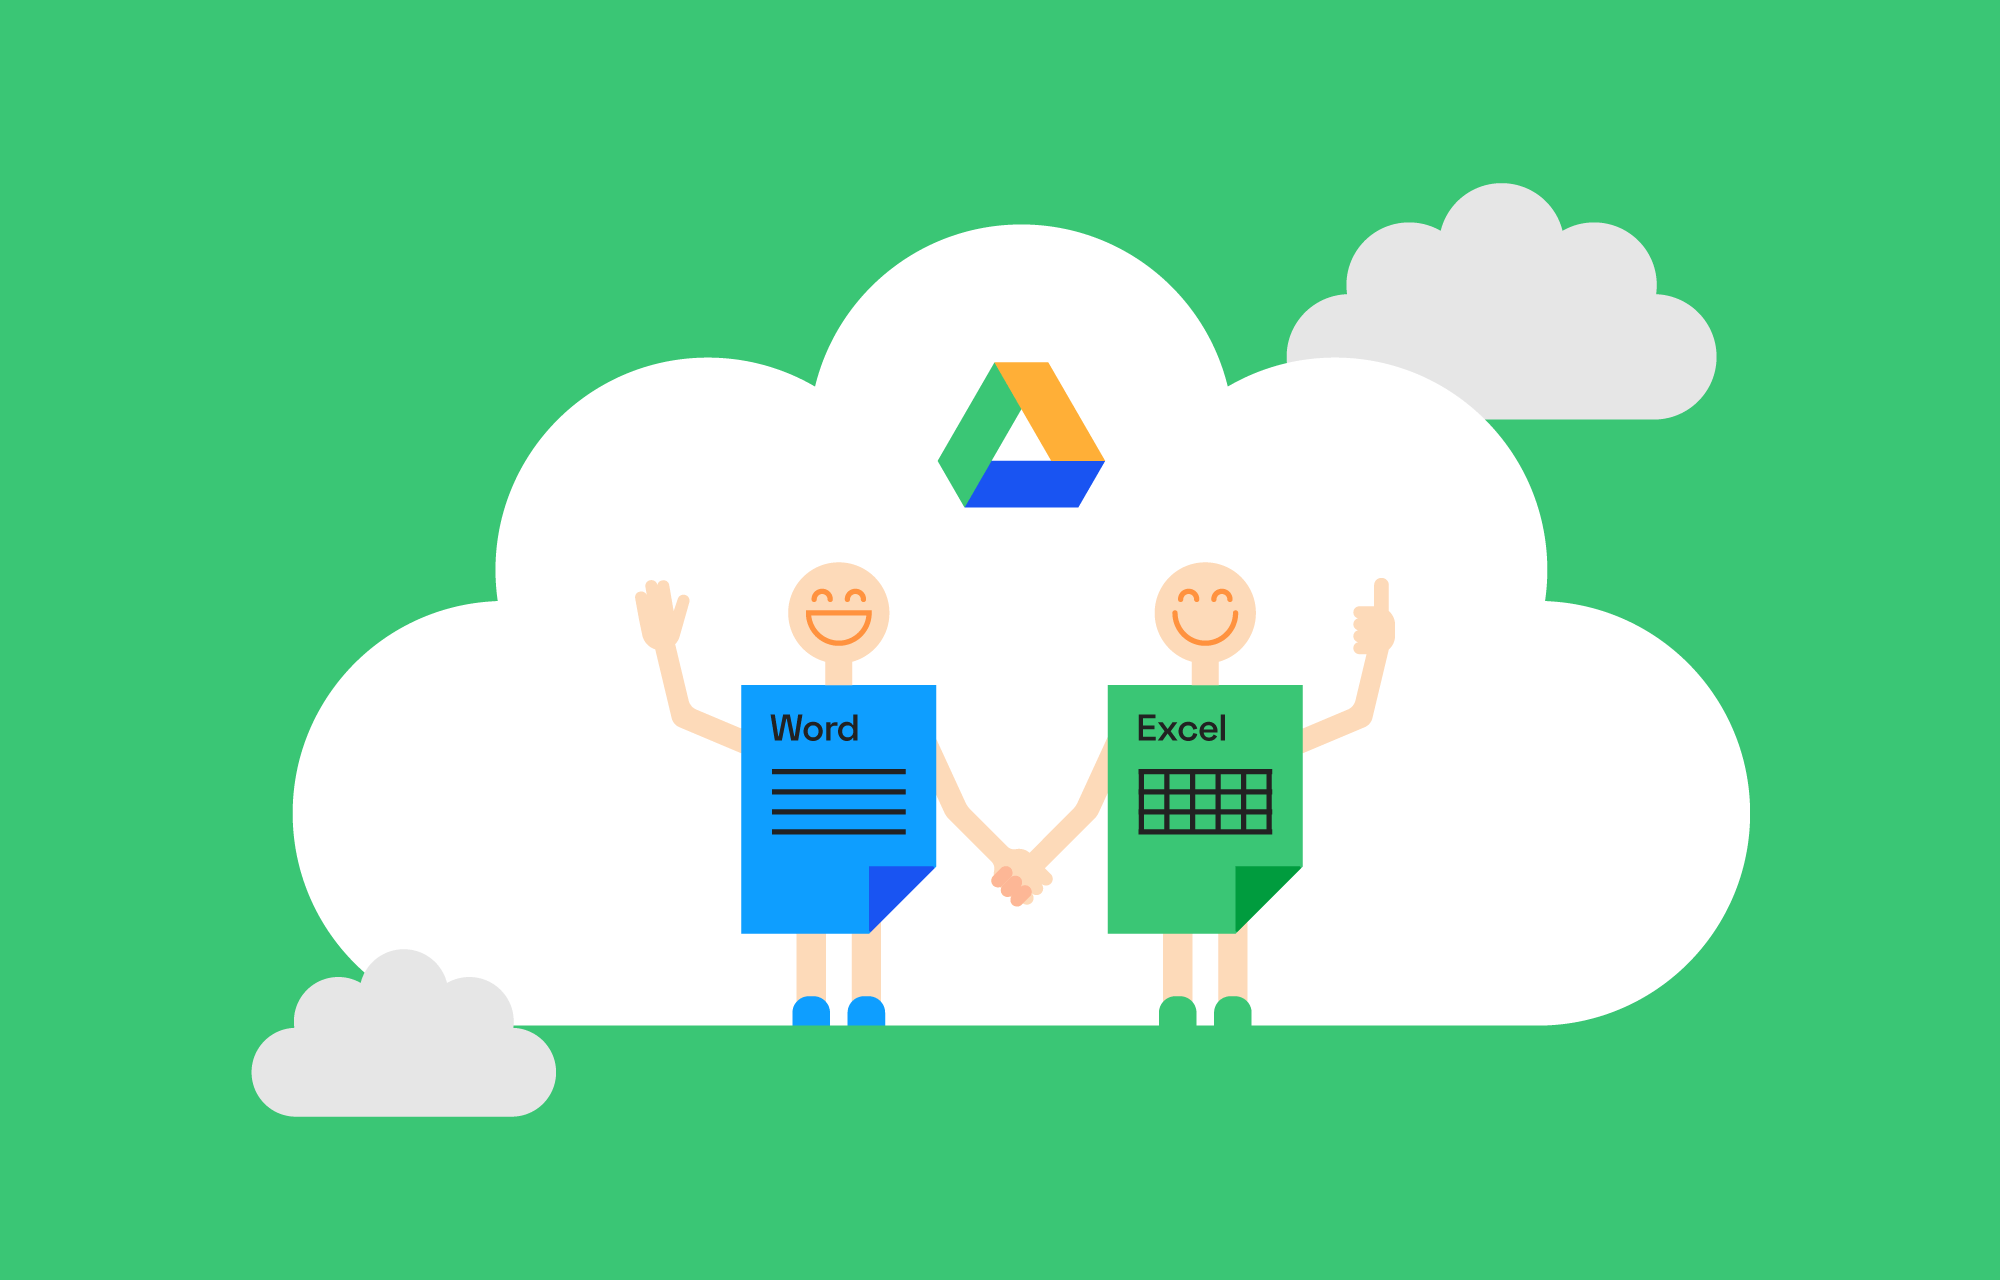 Word and Excel on Google Drive